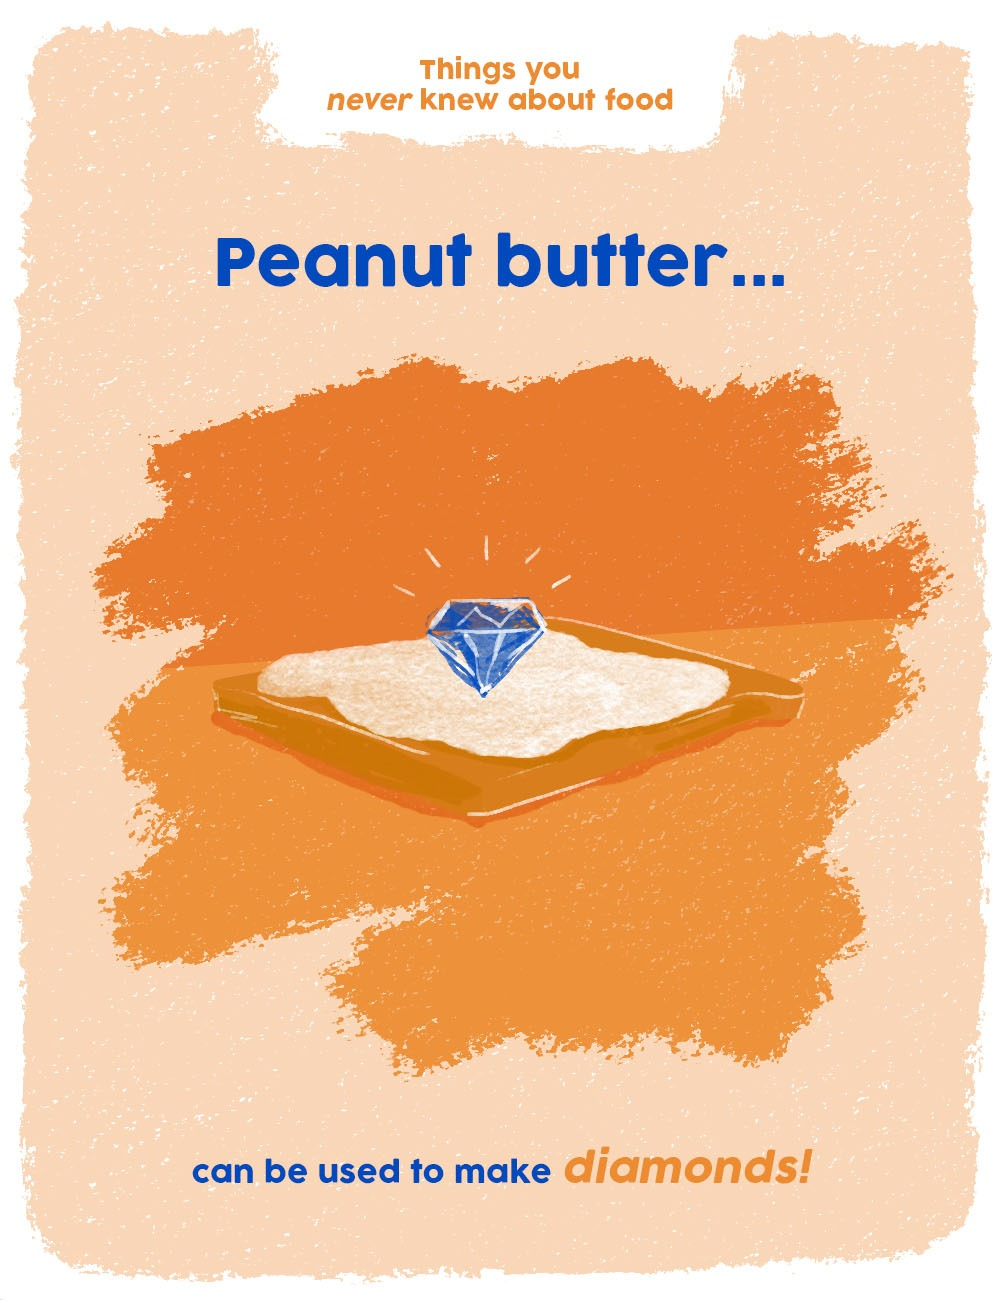 things you never knew about food graphics - peanut butter facts